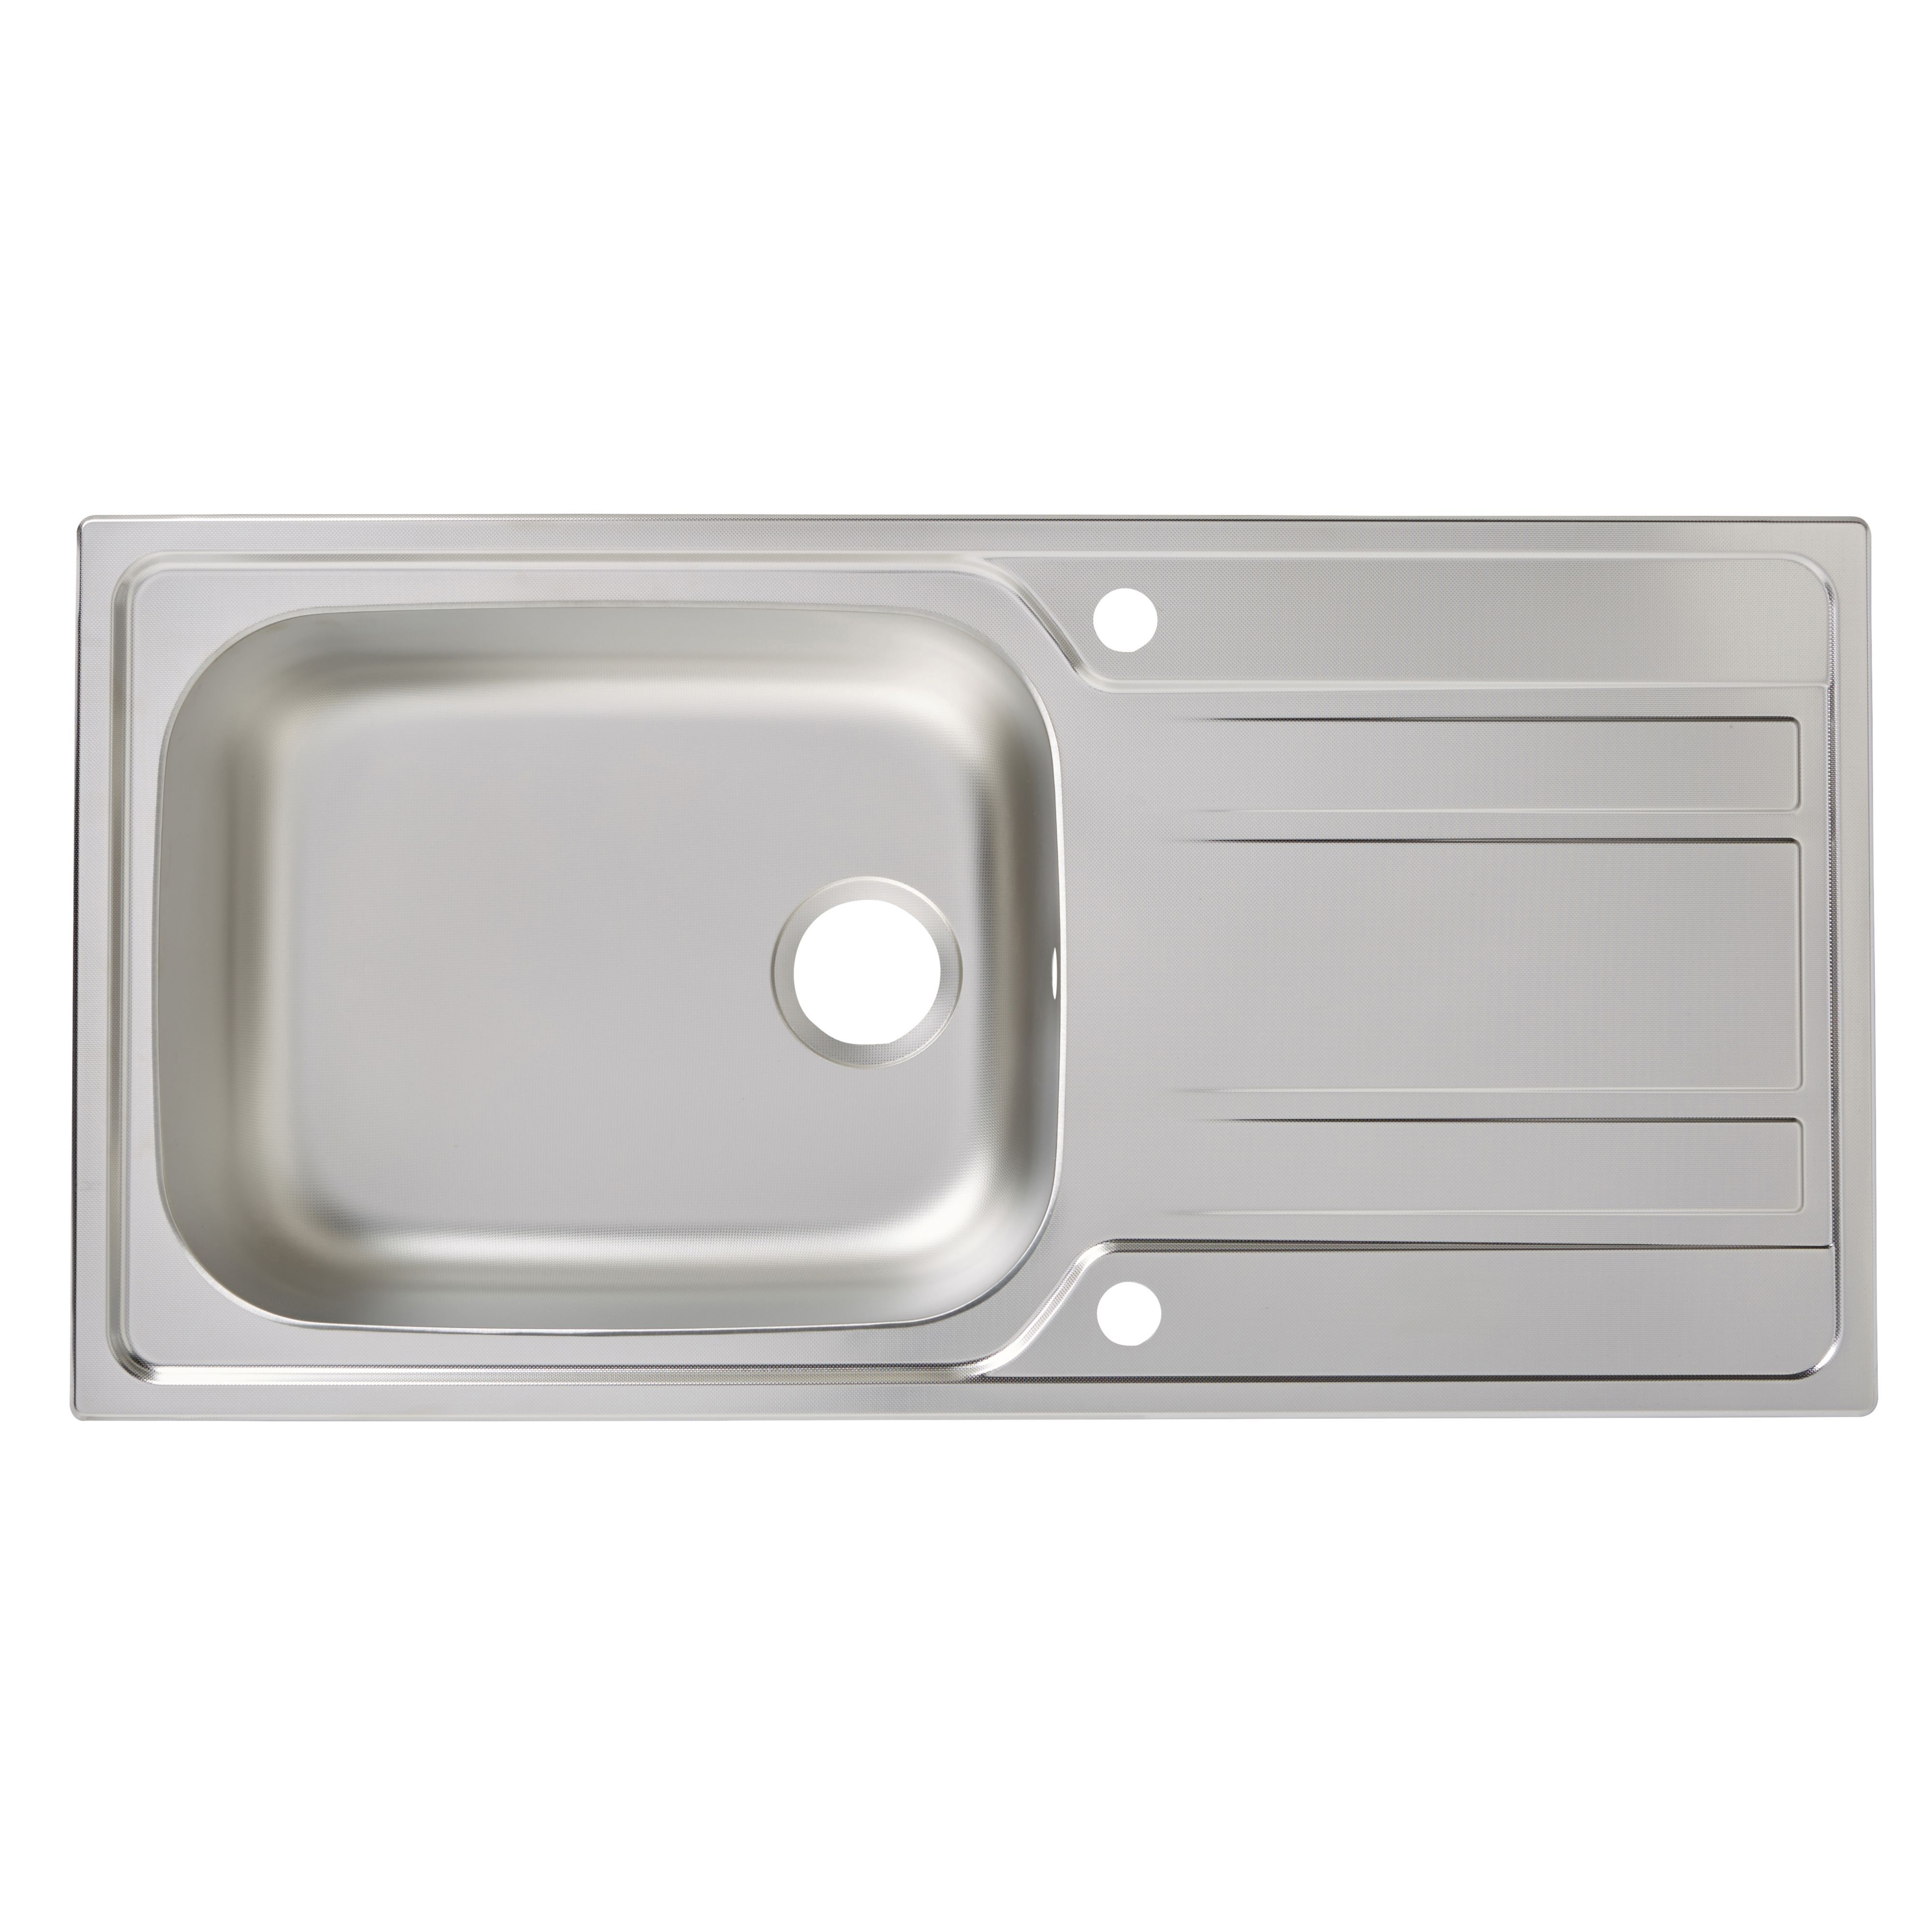 Cooke & Lewis Lyell 1 Bowl Linen Finish Stainless Steel Sink & Drainer